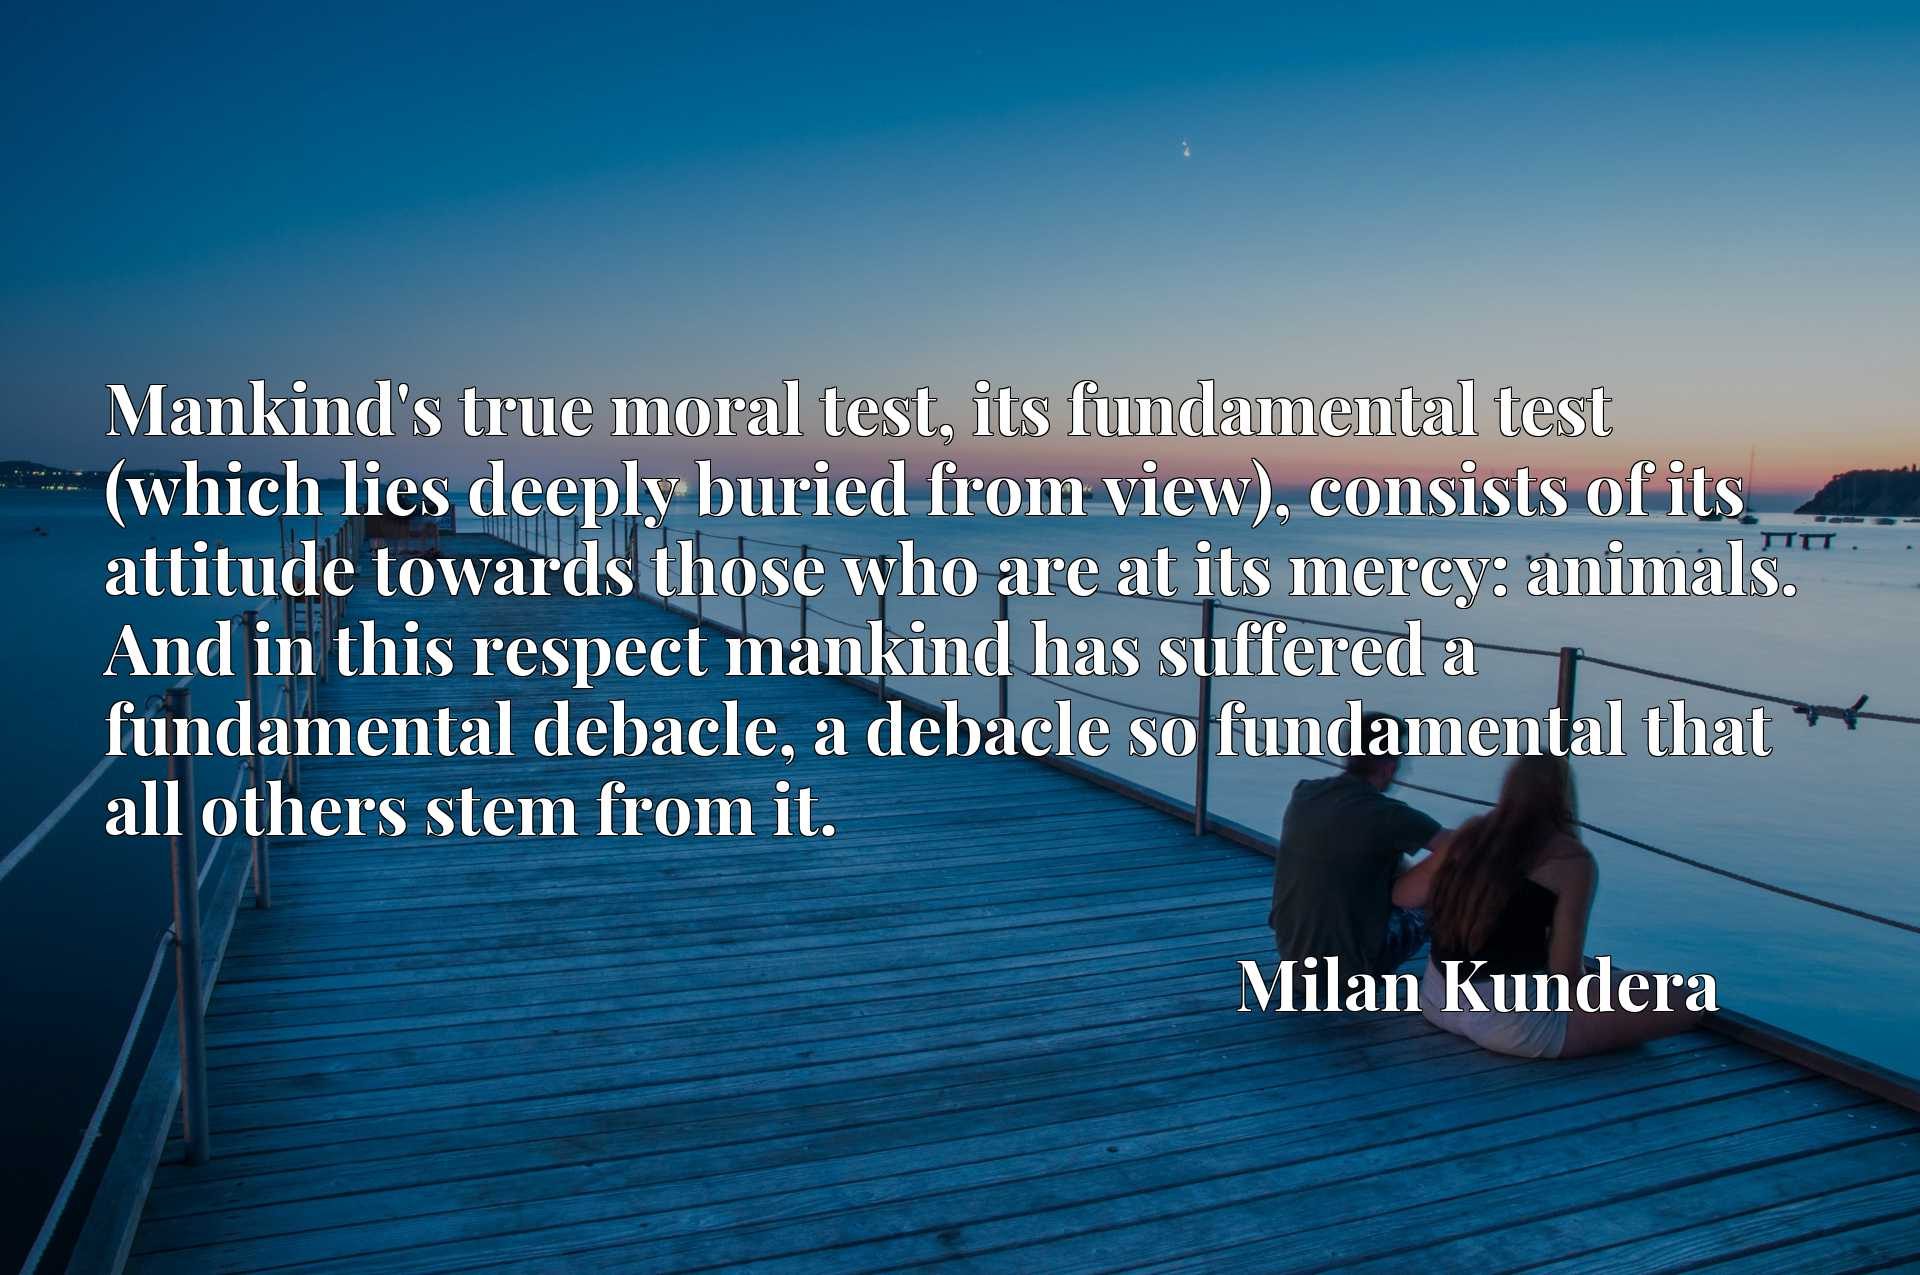 Mankind's true moral test, its fundamental test (which lies deeply buried from view), consists of its attitude towards those who are at its mercy: animals. And in this respect mankind has suffered a fundamental debacle, a debacle so fundamental that all others stem from it.